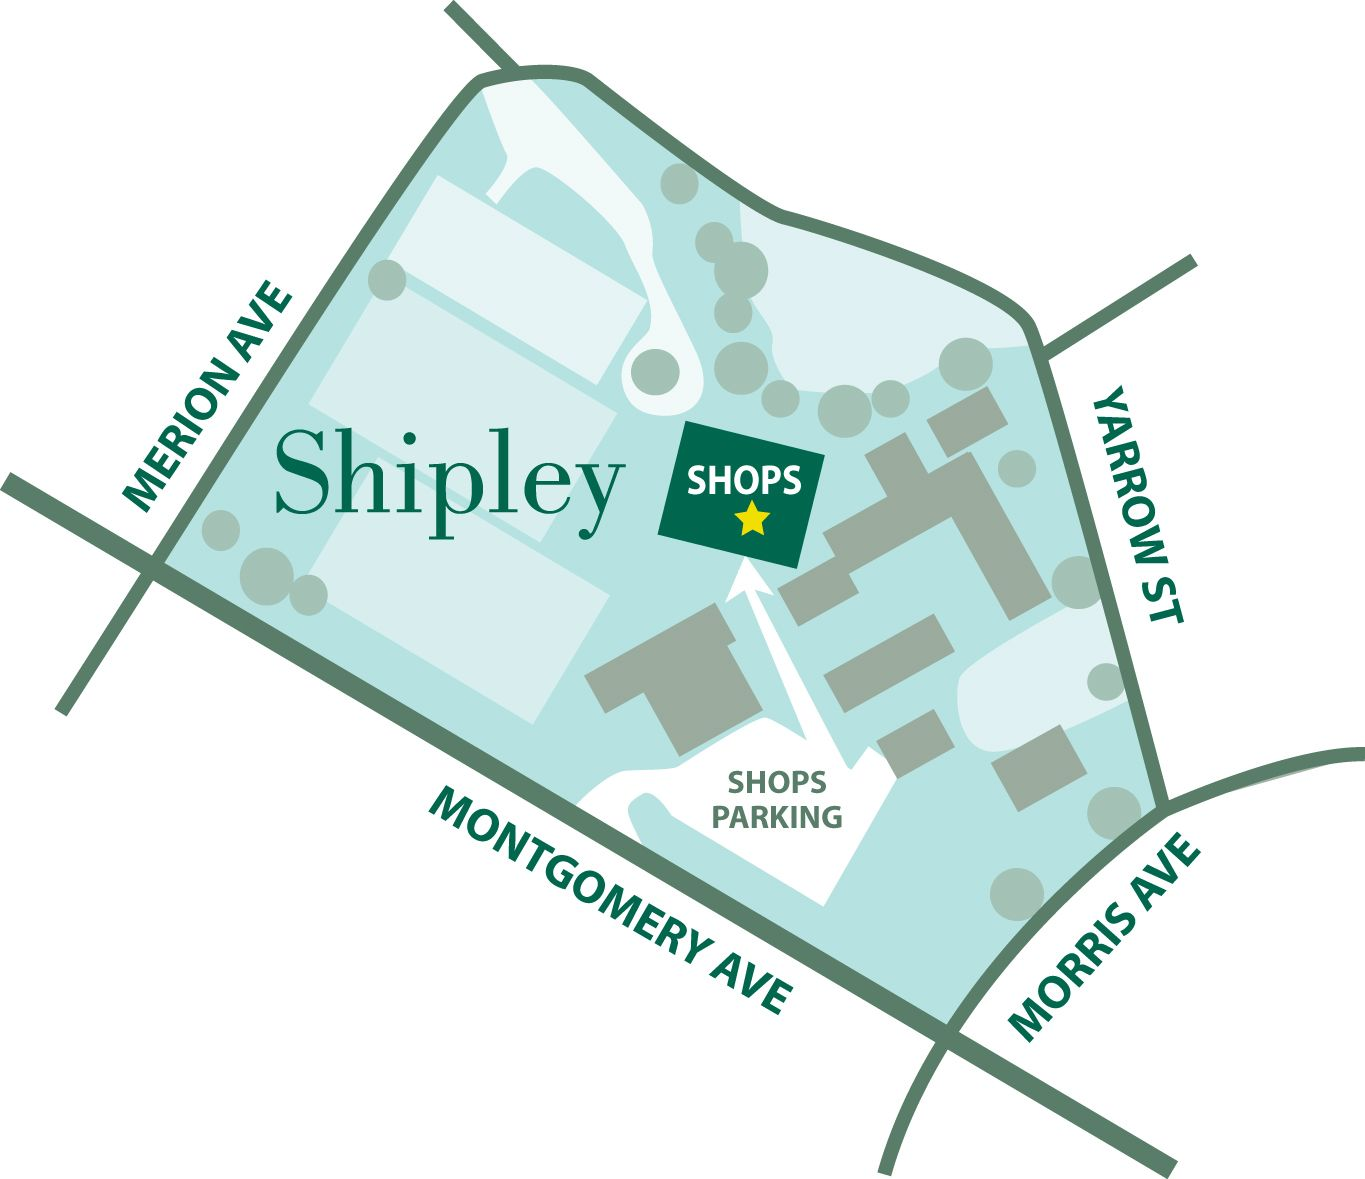 Where to Find Shipley Shops